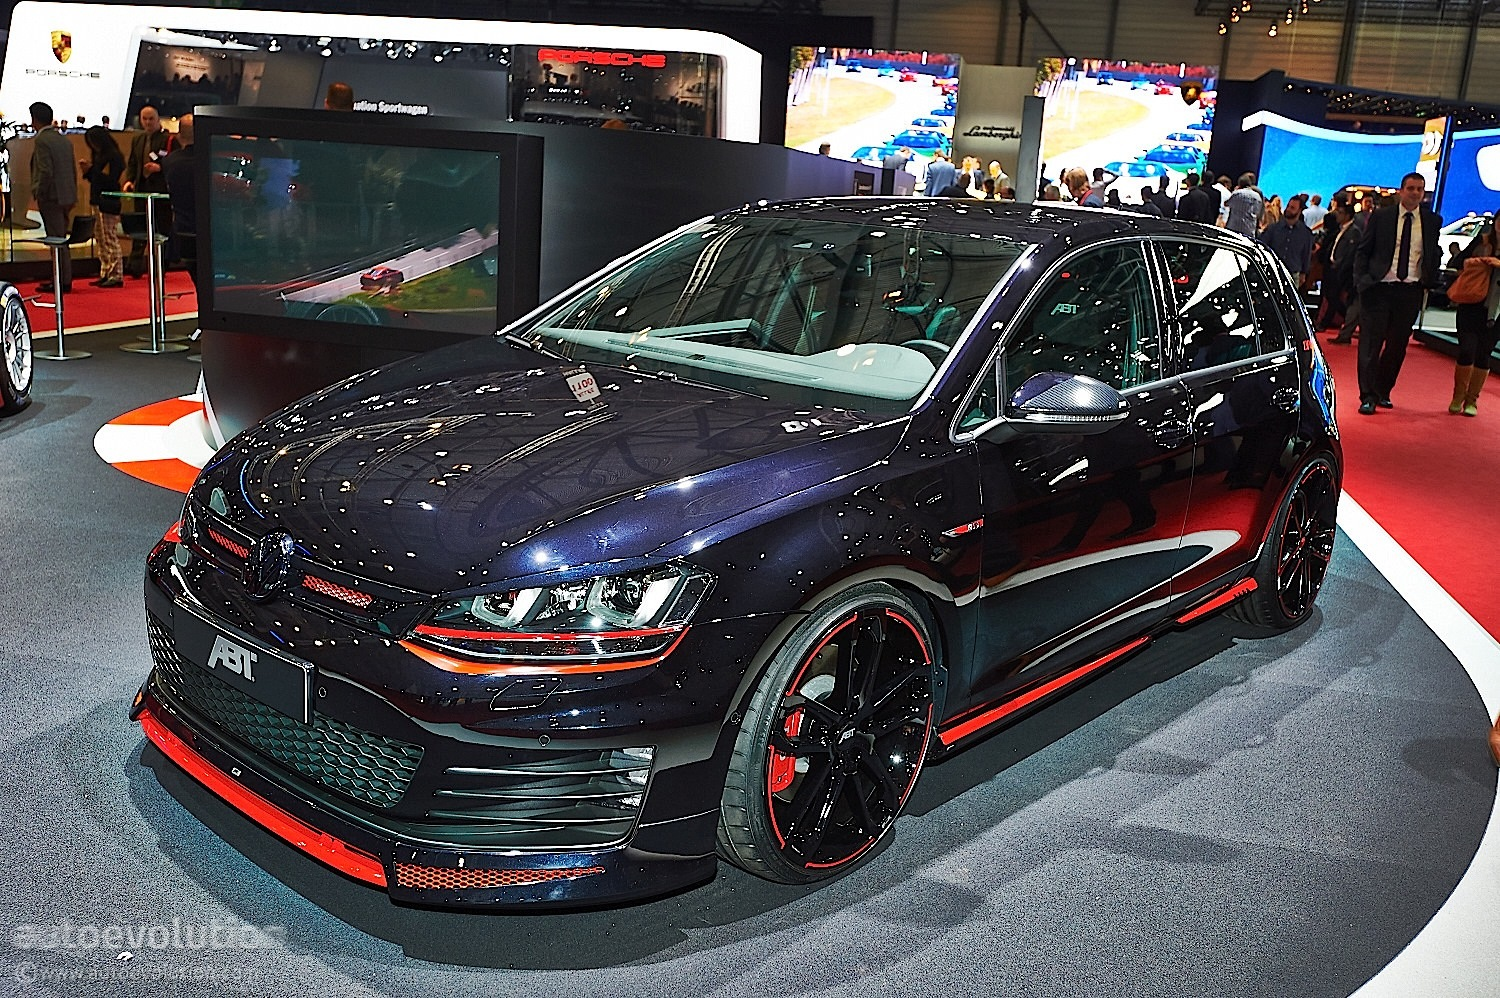 2014 abt golf vii gti dark edition dark cars wallpapers. Black Bedroom Furniture Sets. Home Design Ideas